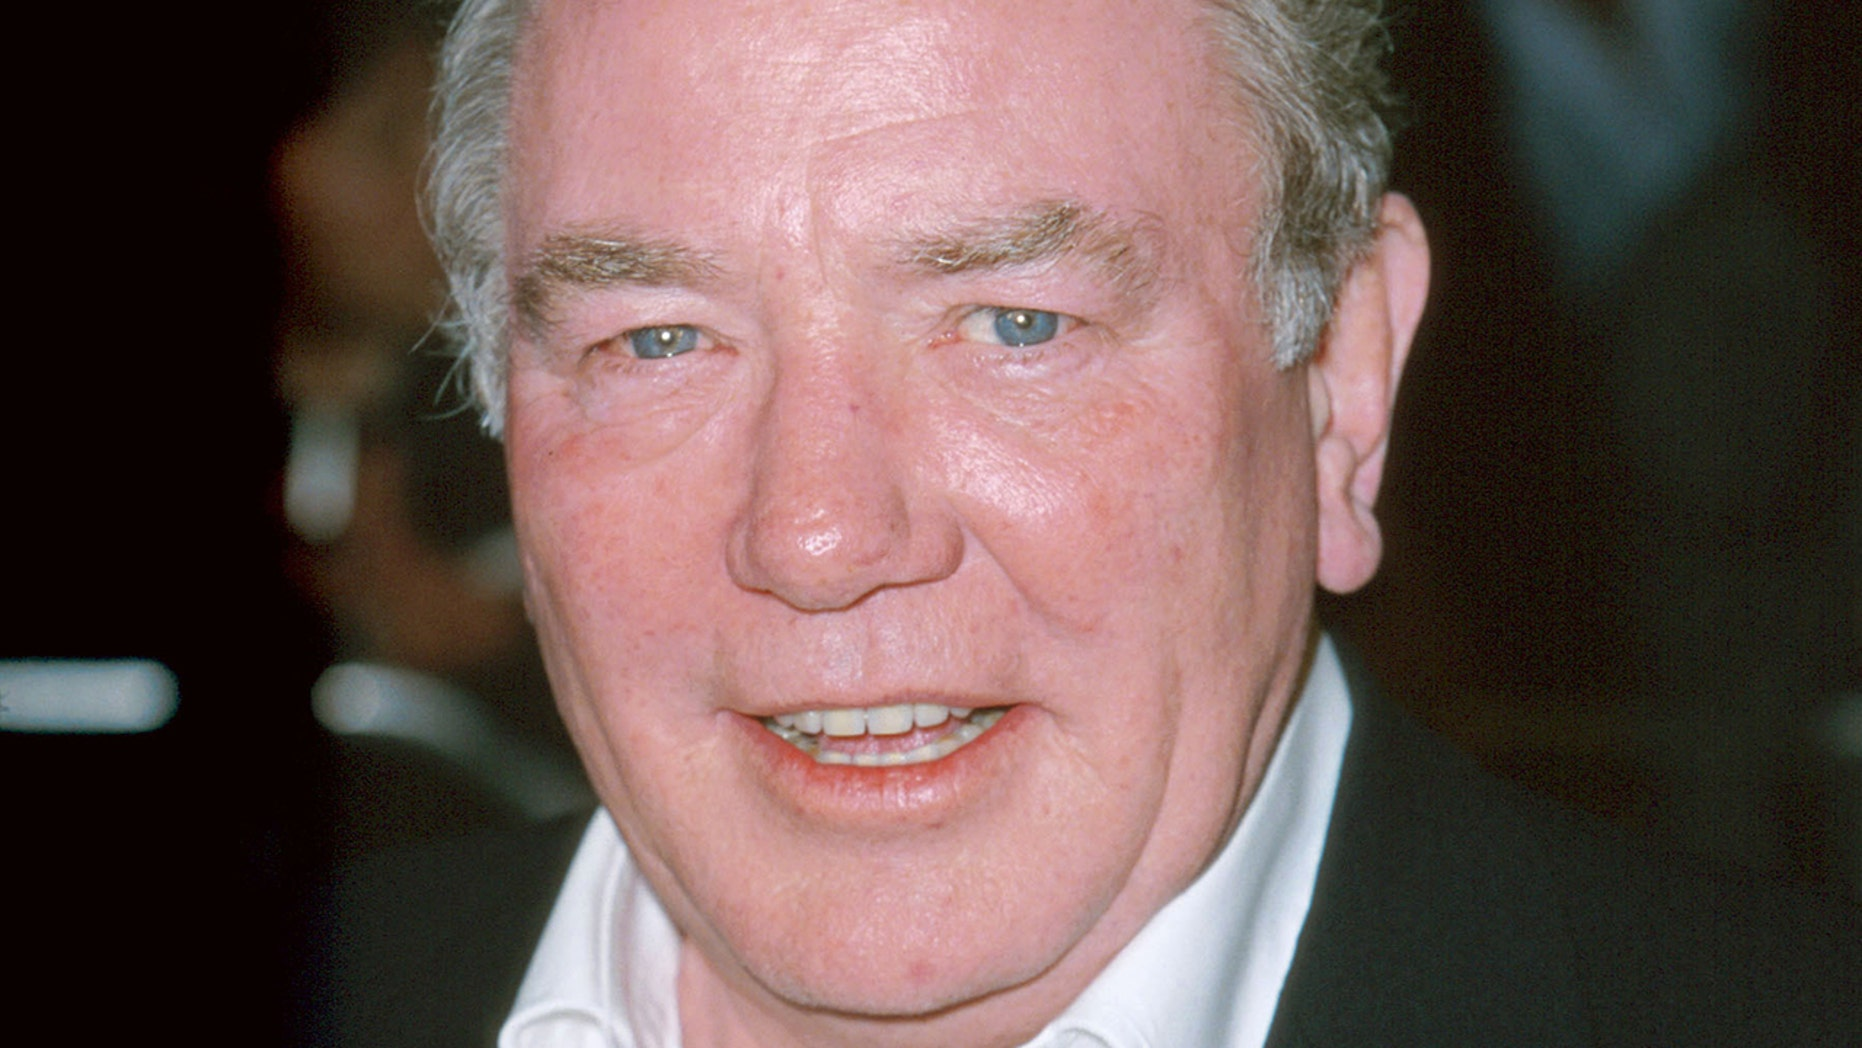 From 'Tom Jones' to 'Skyfall': Star Albert Finney Dies at 82